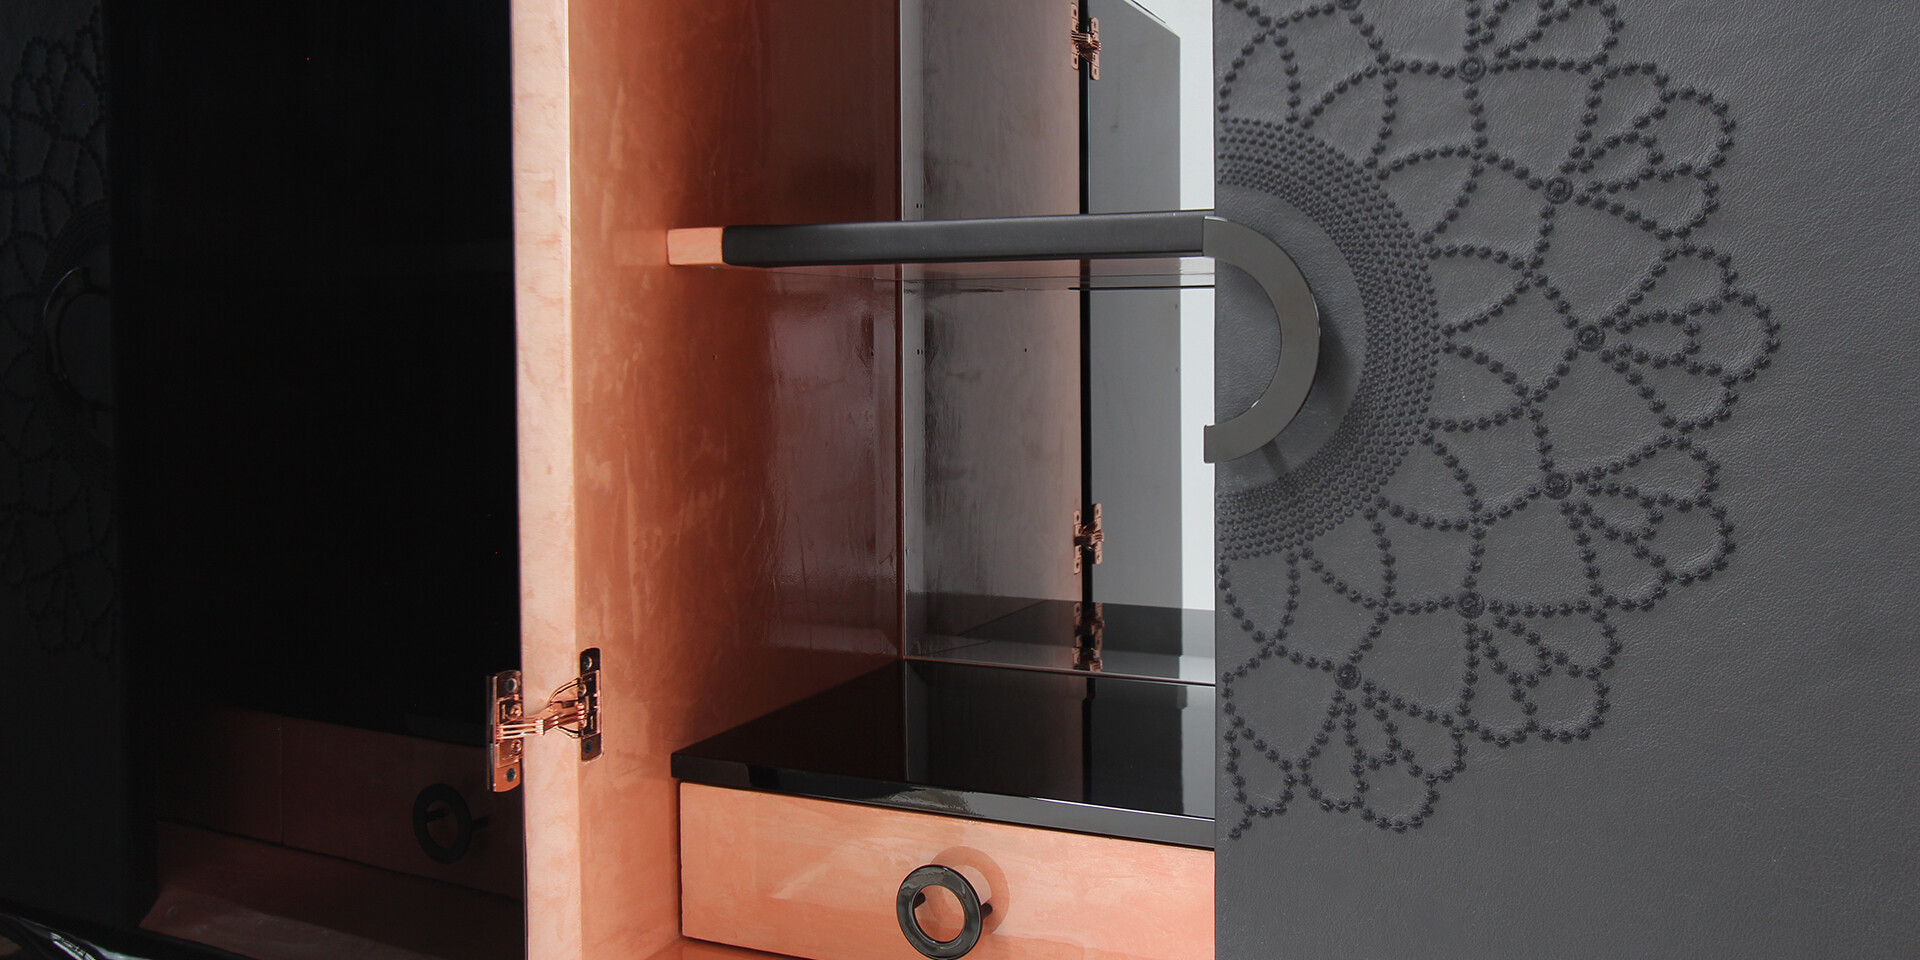 NAPERON EMBROIDERY CABINET Detailinsideview ALMA DE LUCE